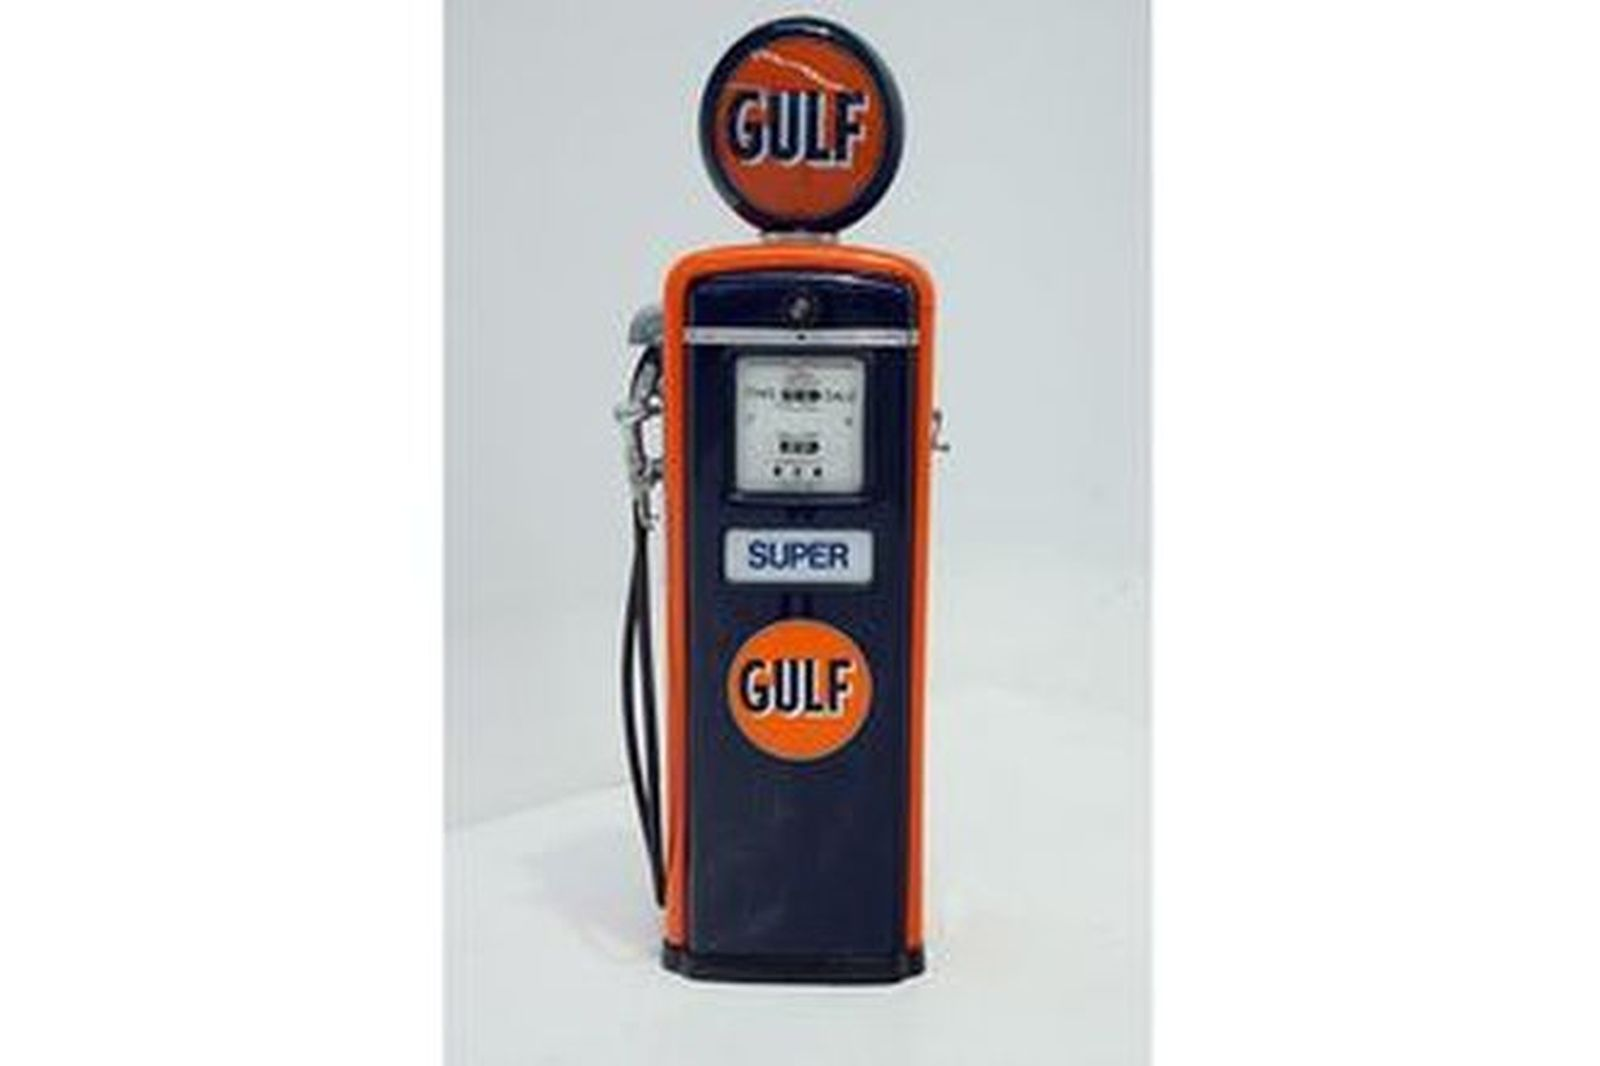 Petrol Pump - 1940's USA Gilbarco in Gulf Livery with Reproduction Globe (Cosmetically Restored)